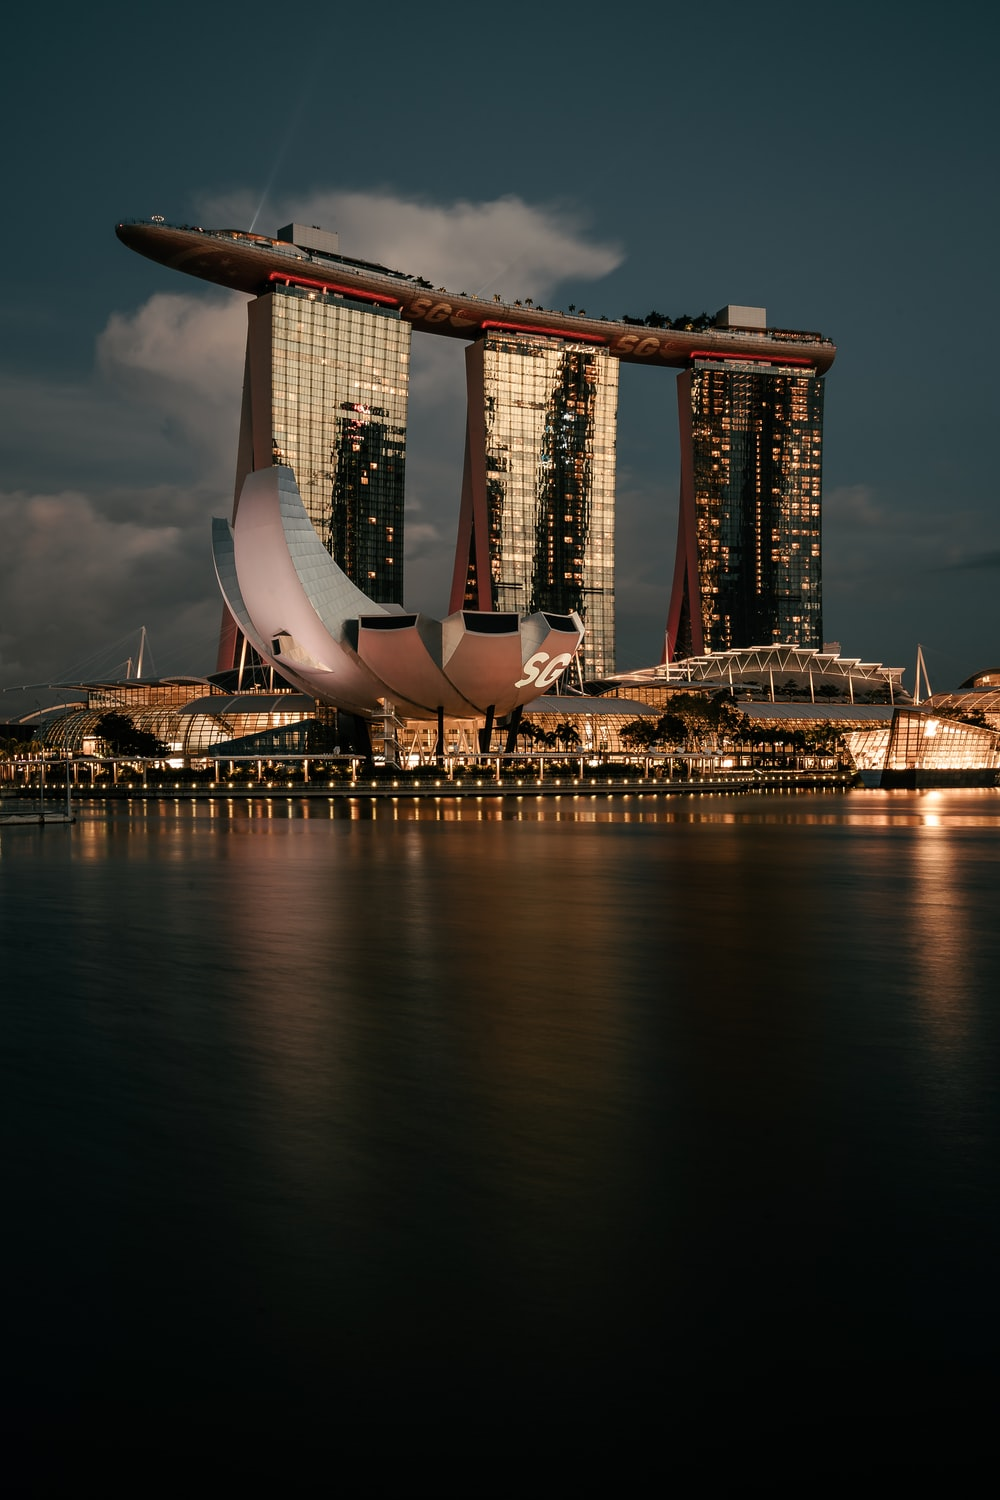 white and brown building near body of water during night time